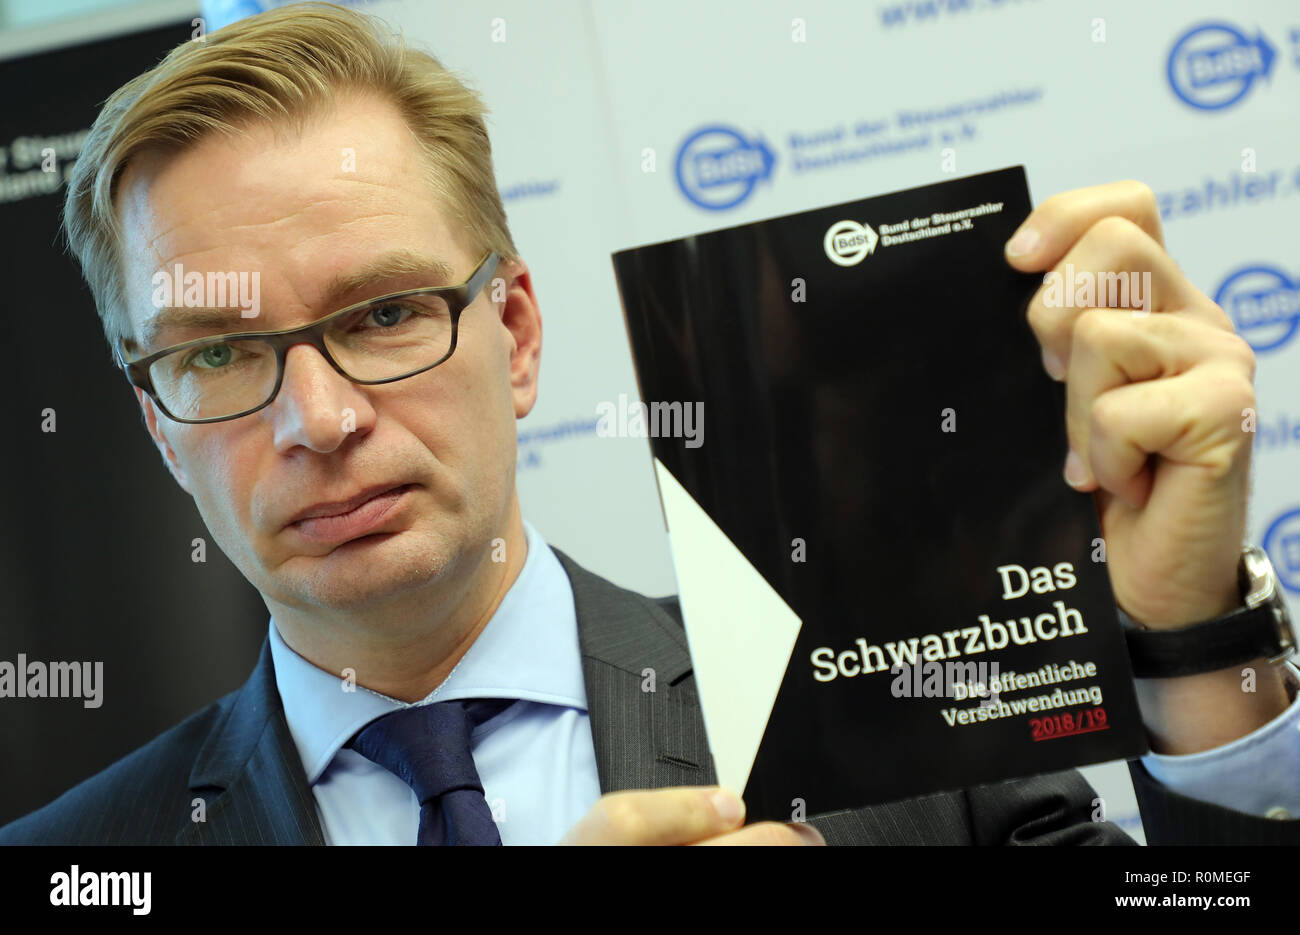 Berlin, Germany. 06th Nov, 2018. Reiner Holznagel, President of the Taxpayers' Association, presents the new 'Black Book' at a press conference. The association criticizes the wasteful use of taxpayers' money on the basis of examples. Credit: Wolfgang Kumm/dpa/Alamy Live News - Stock Image